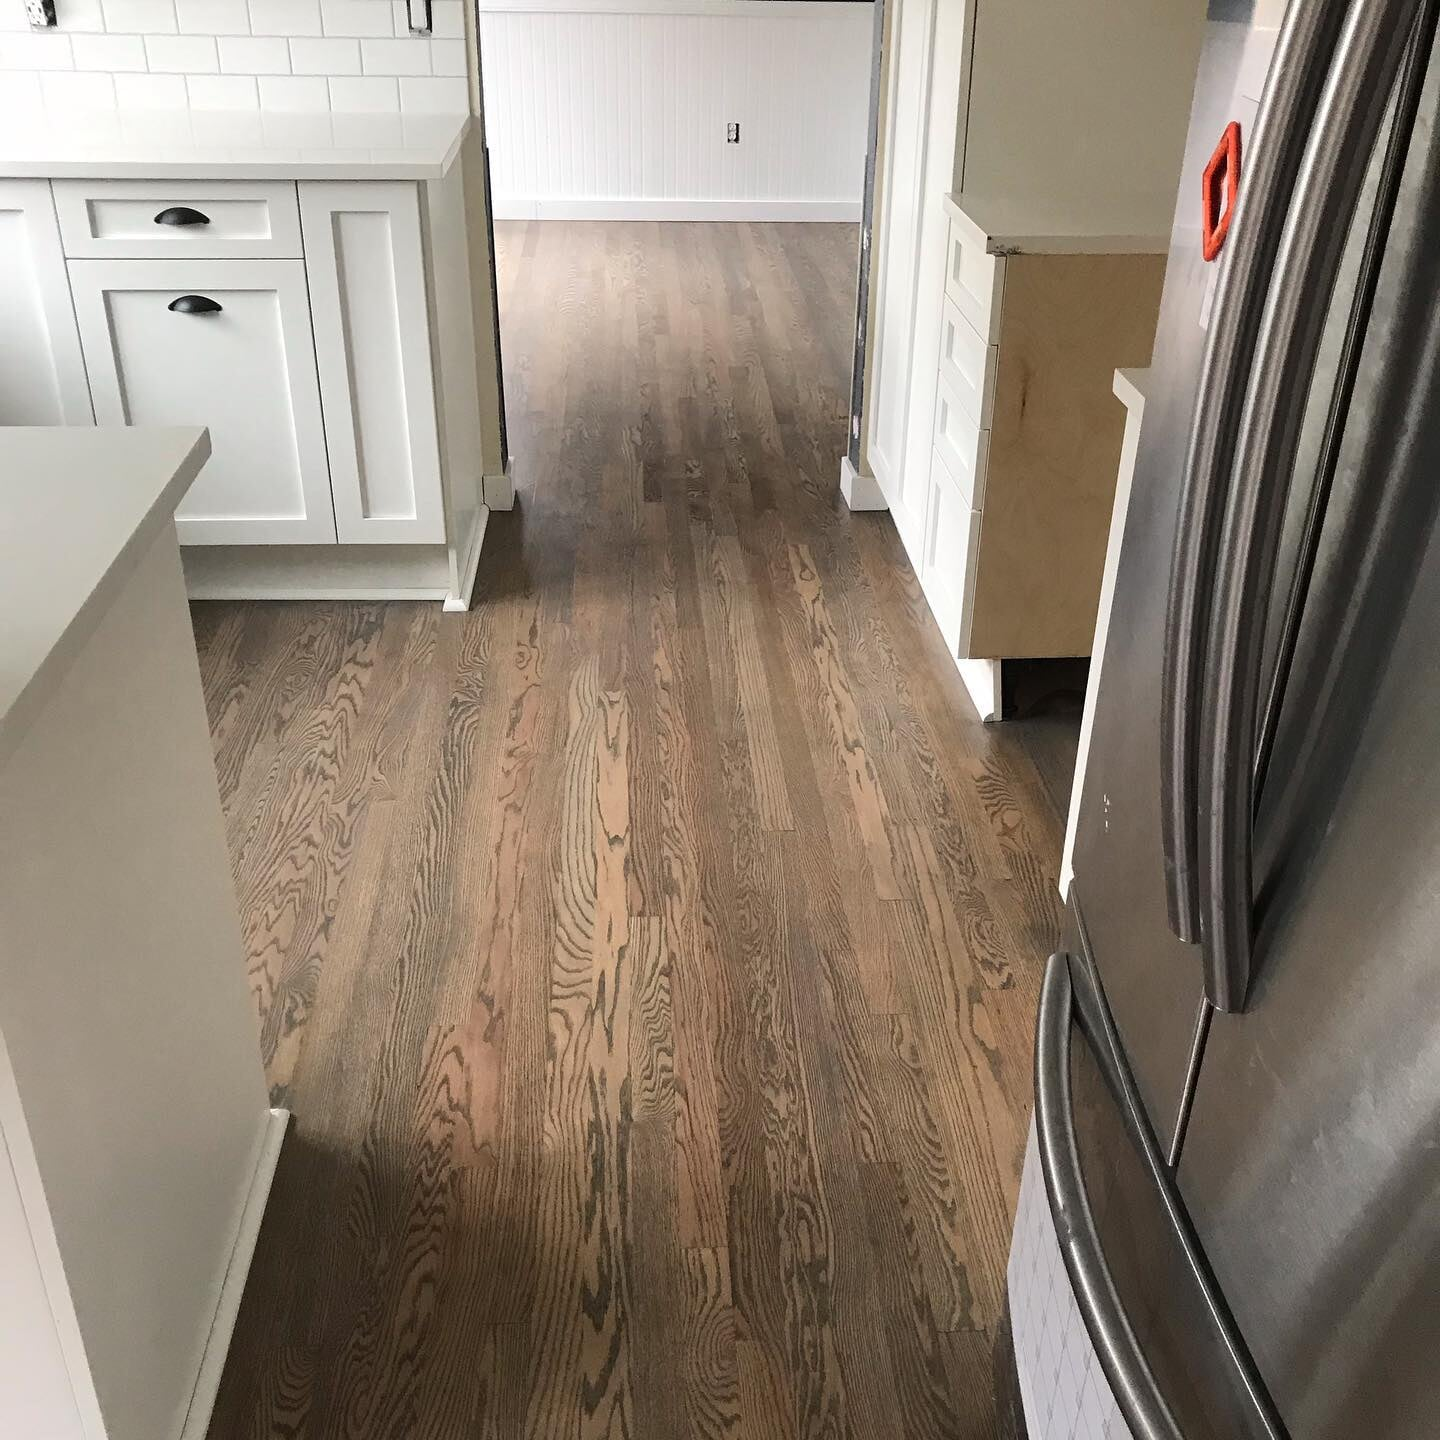 Hardwood flooring from LeBlanc Floors & Interiors in Seattle, WA